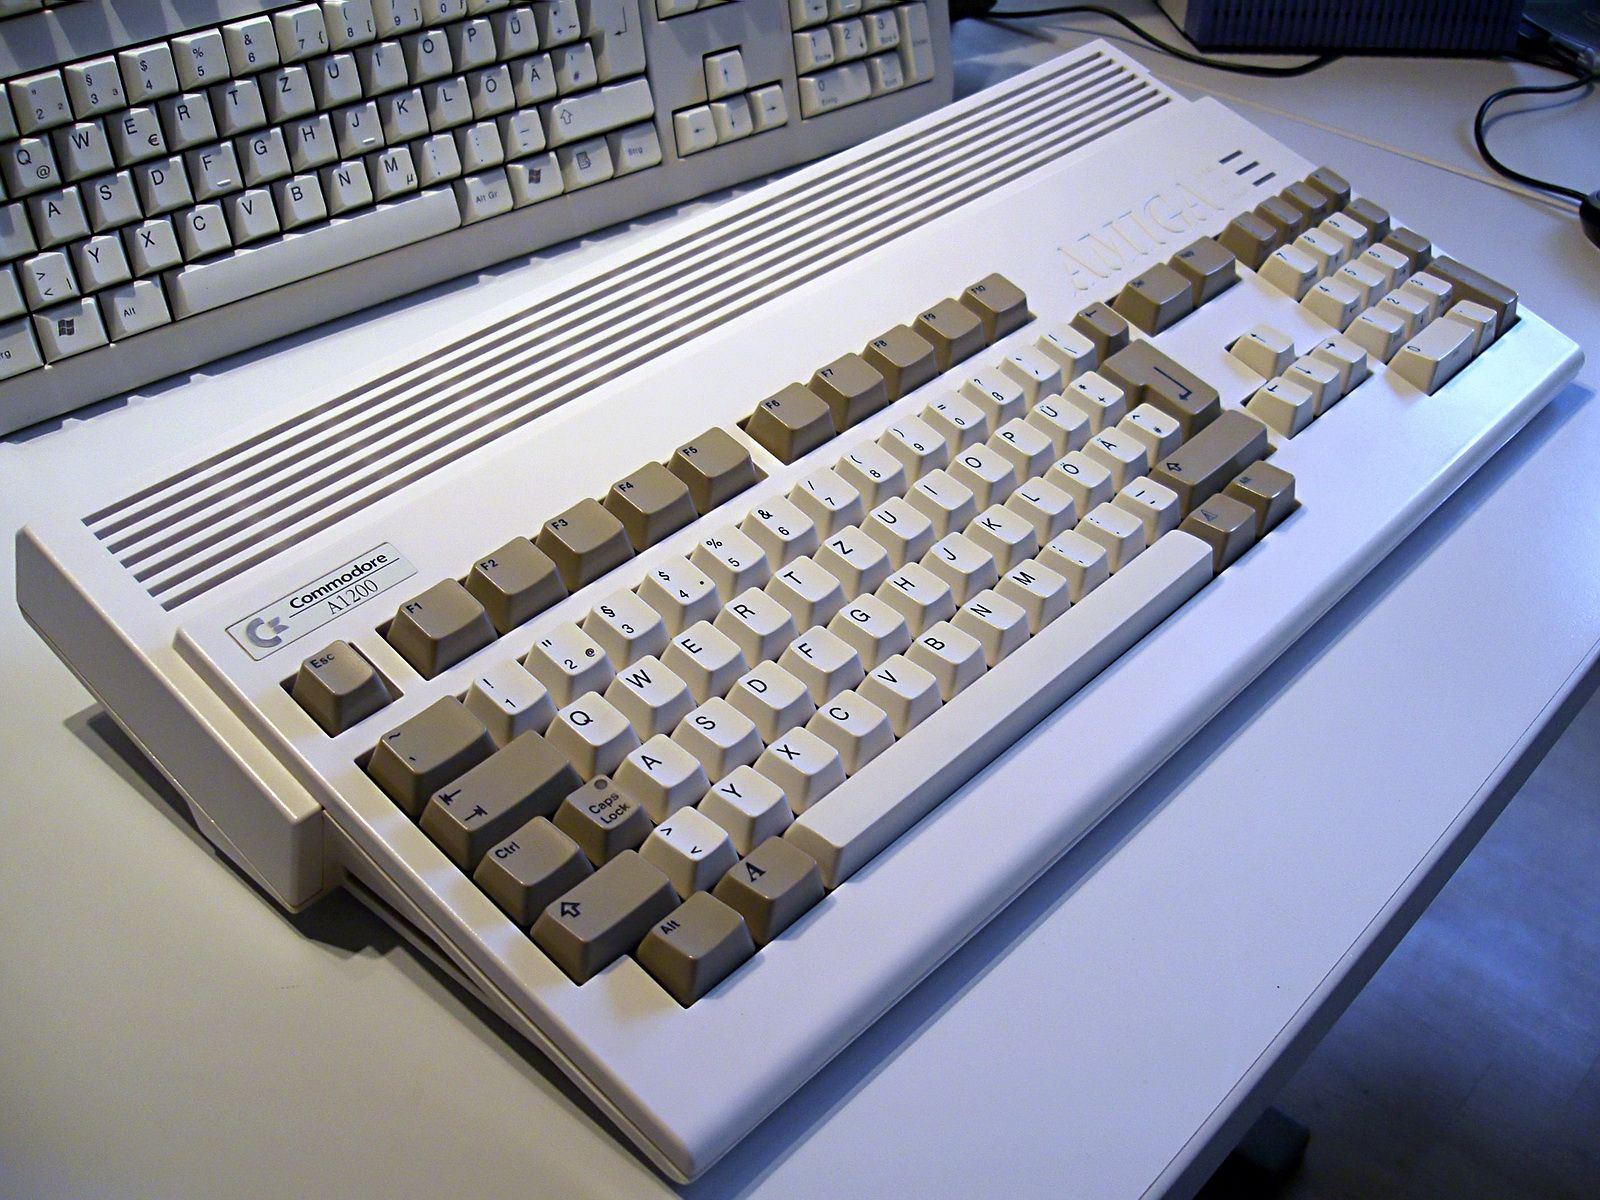 The Amiga 1200 (Advanced Graphics Architecture), released in 1992. Together with the A4000 this was one of the last Amiga models that was released before Commodore's bankruptcy.